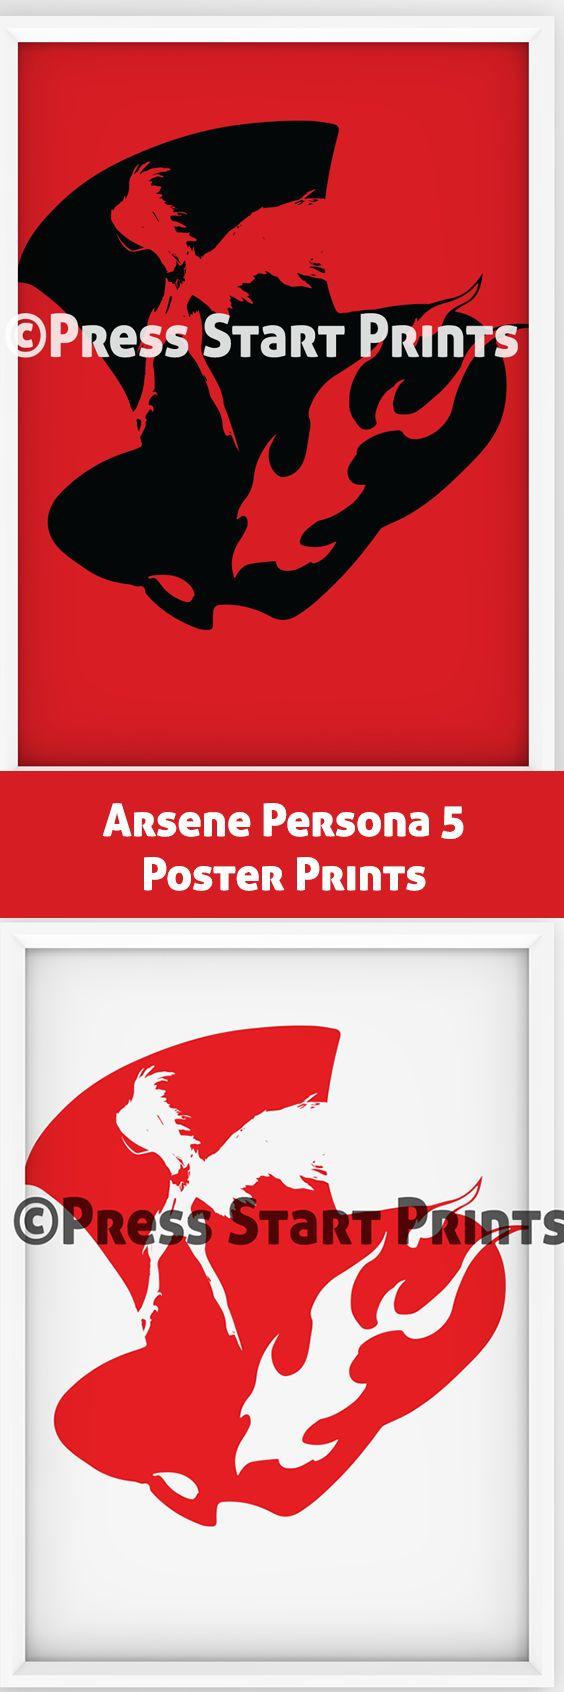 Poster Prints of Joker's Persona Arsene from Persona 5. Set of two that can be instantly downloaded and printed off as a gift or to decorate any space. Check it out at https://www.etsy.com/nz/listing/509551968/jokers-persona-arsene-from-persona-5?